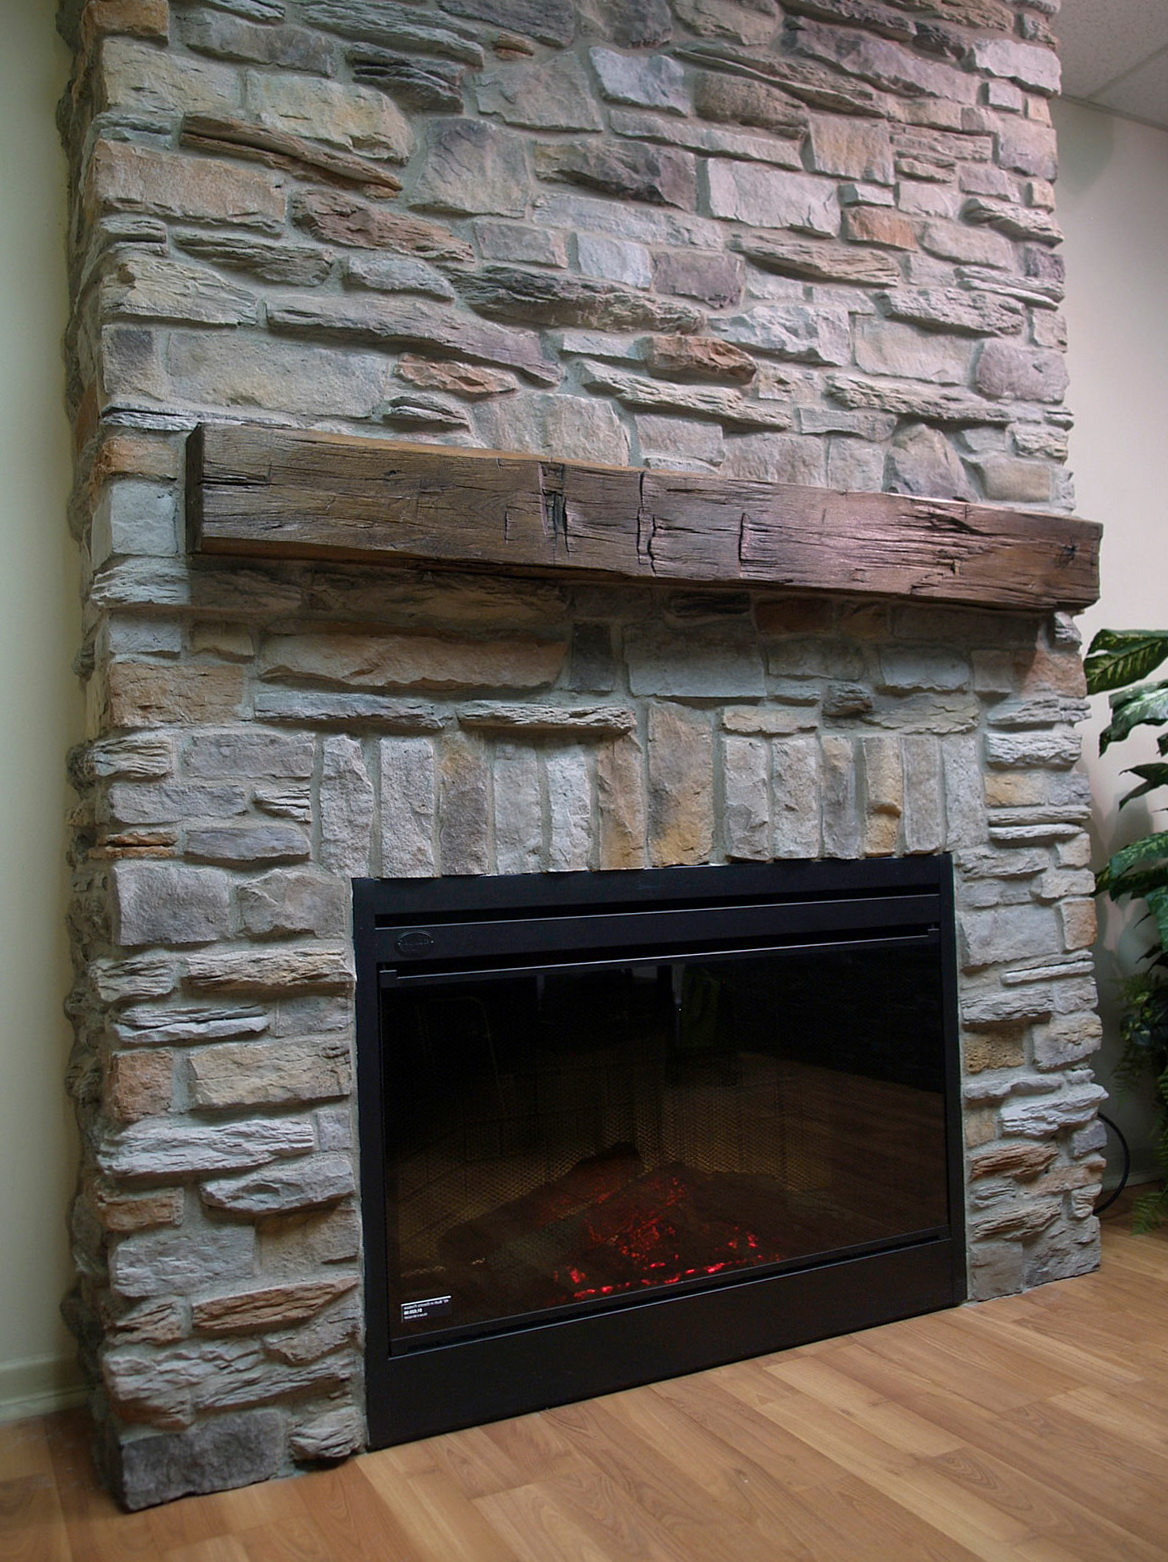 Fireplace Rocks Lovely Different Chimney Rock Fire at Home — Mile Sto Style Decorations